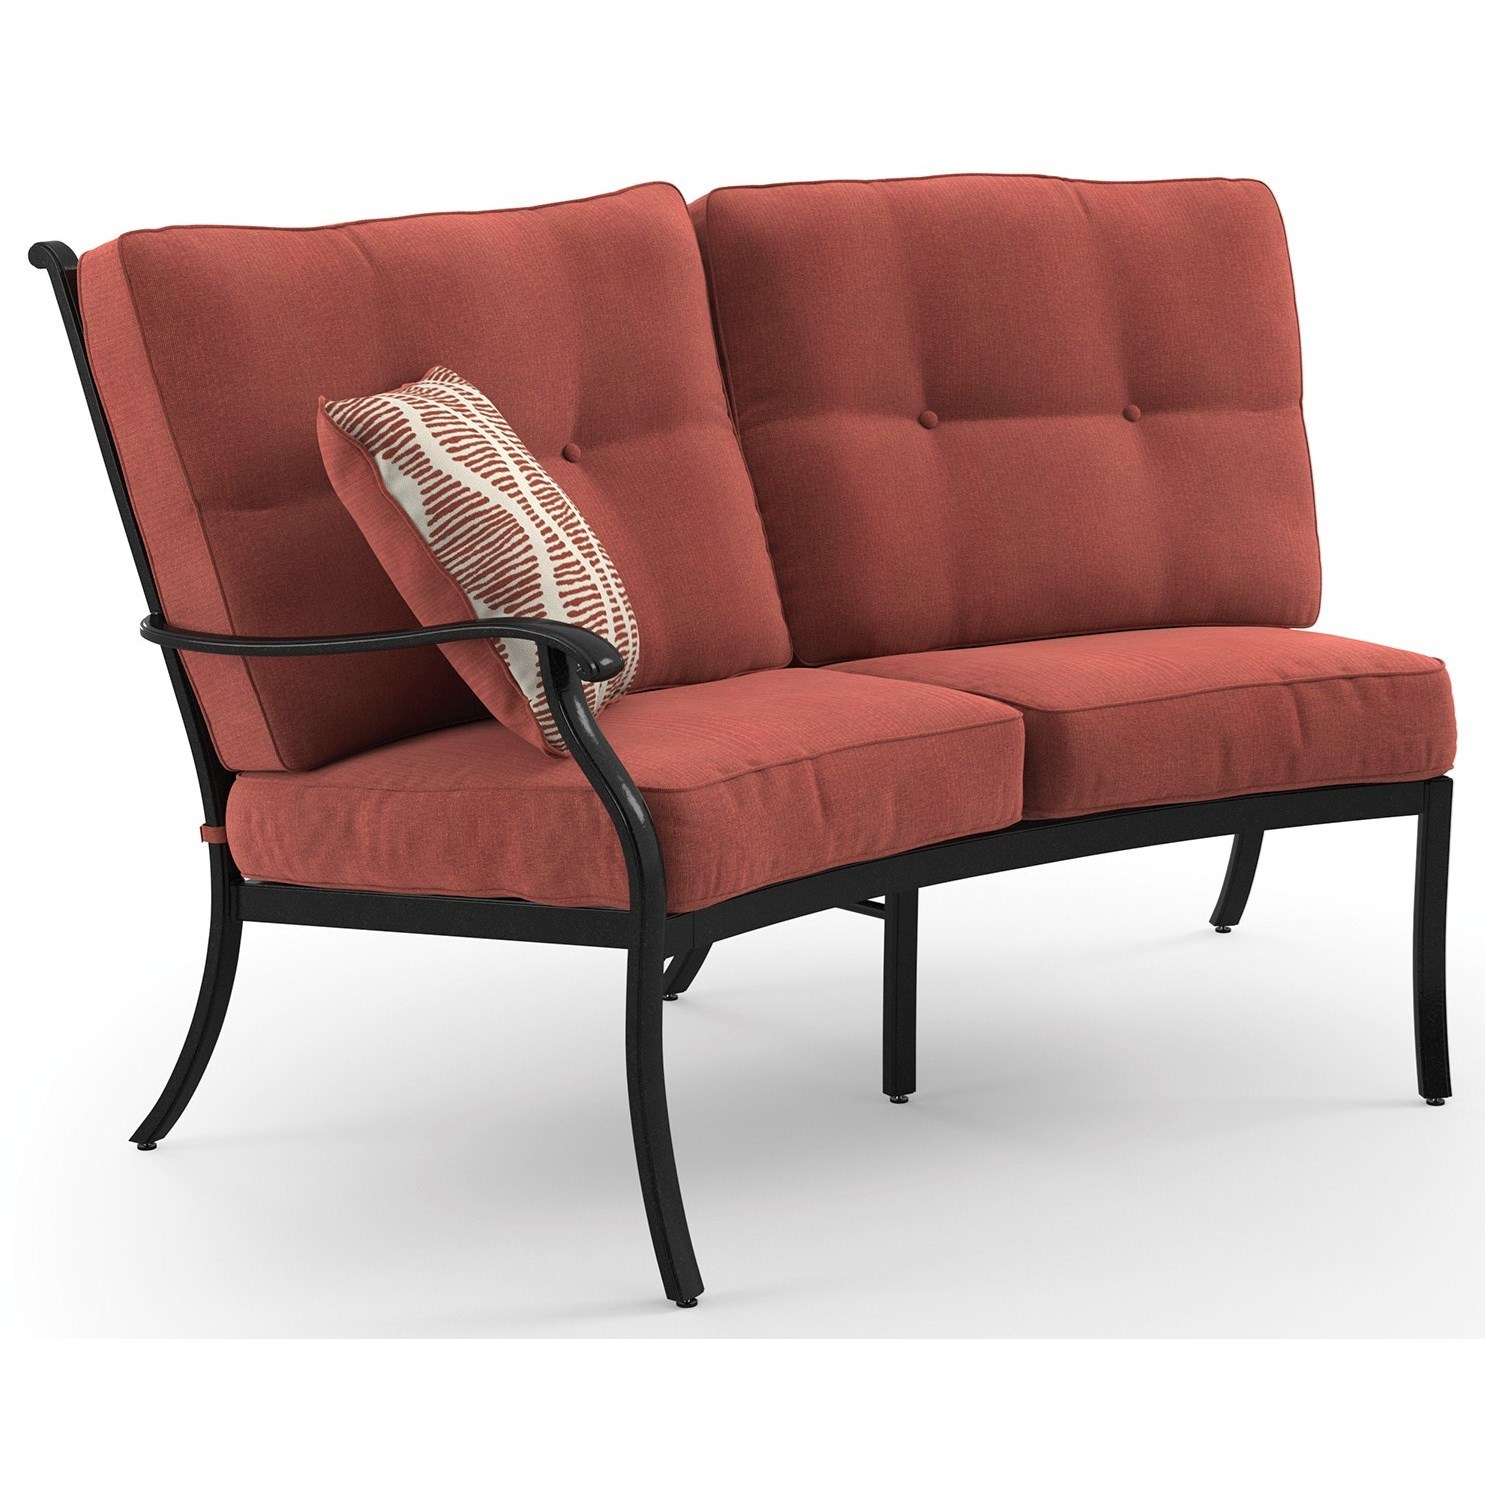 Signature Design by Ashley Burnella LAF Loveseat with Cushion - Item Number: P456-855